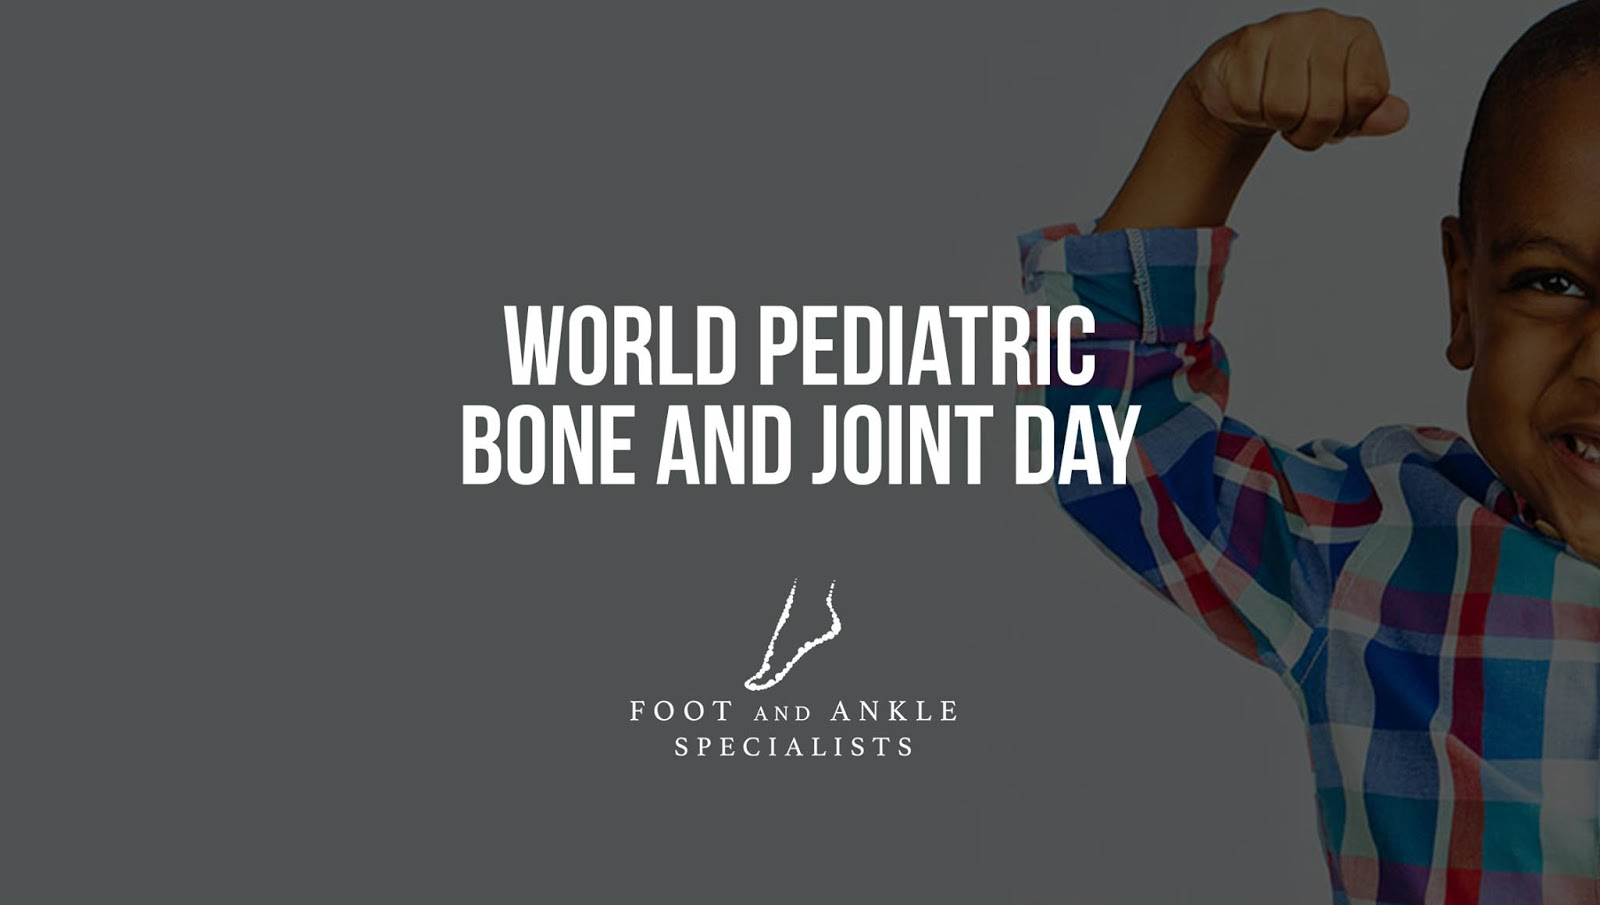 World Pediatric Bone and Joint Day Wishes Lovely Pics